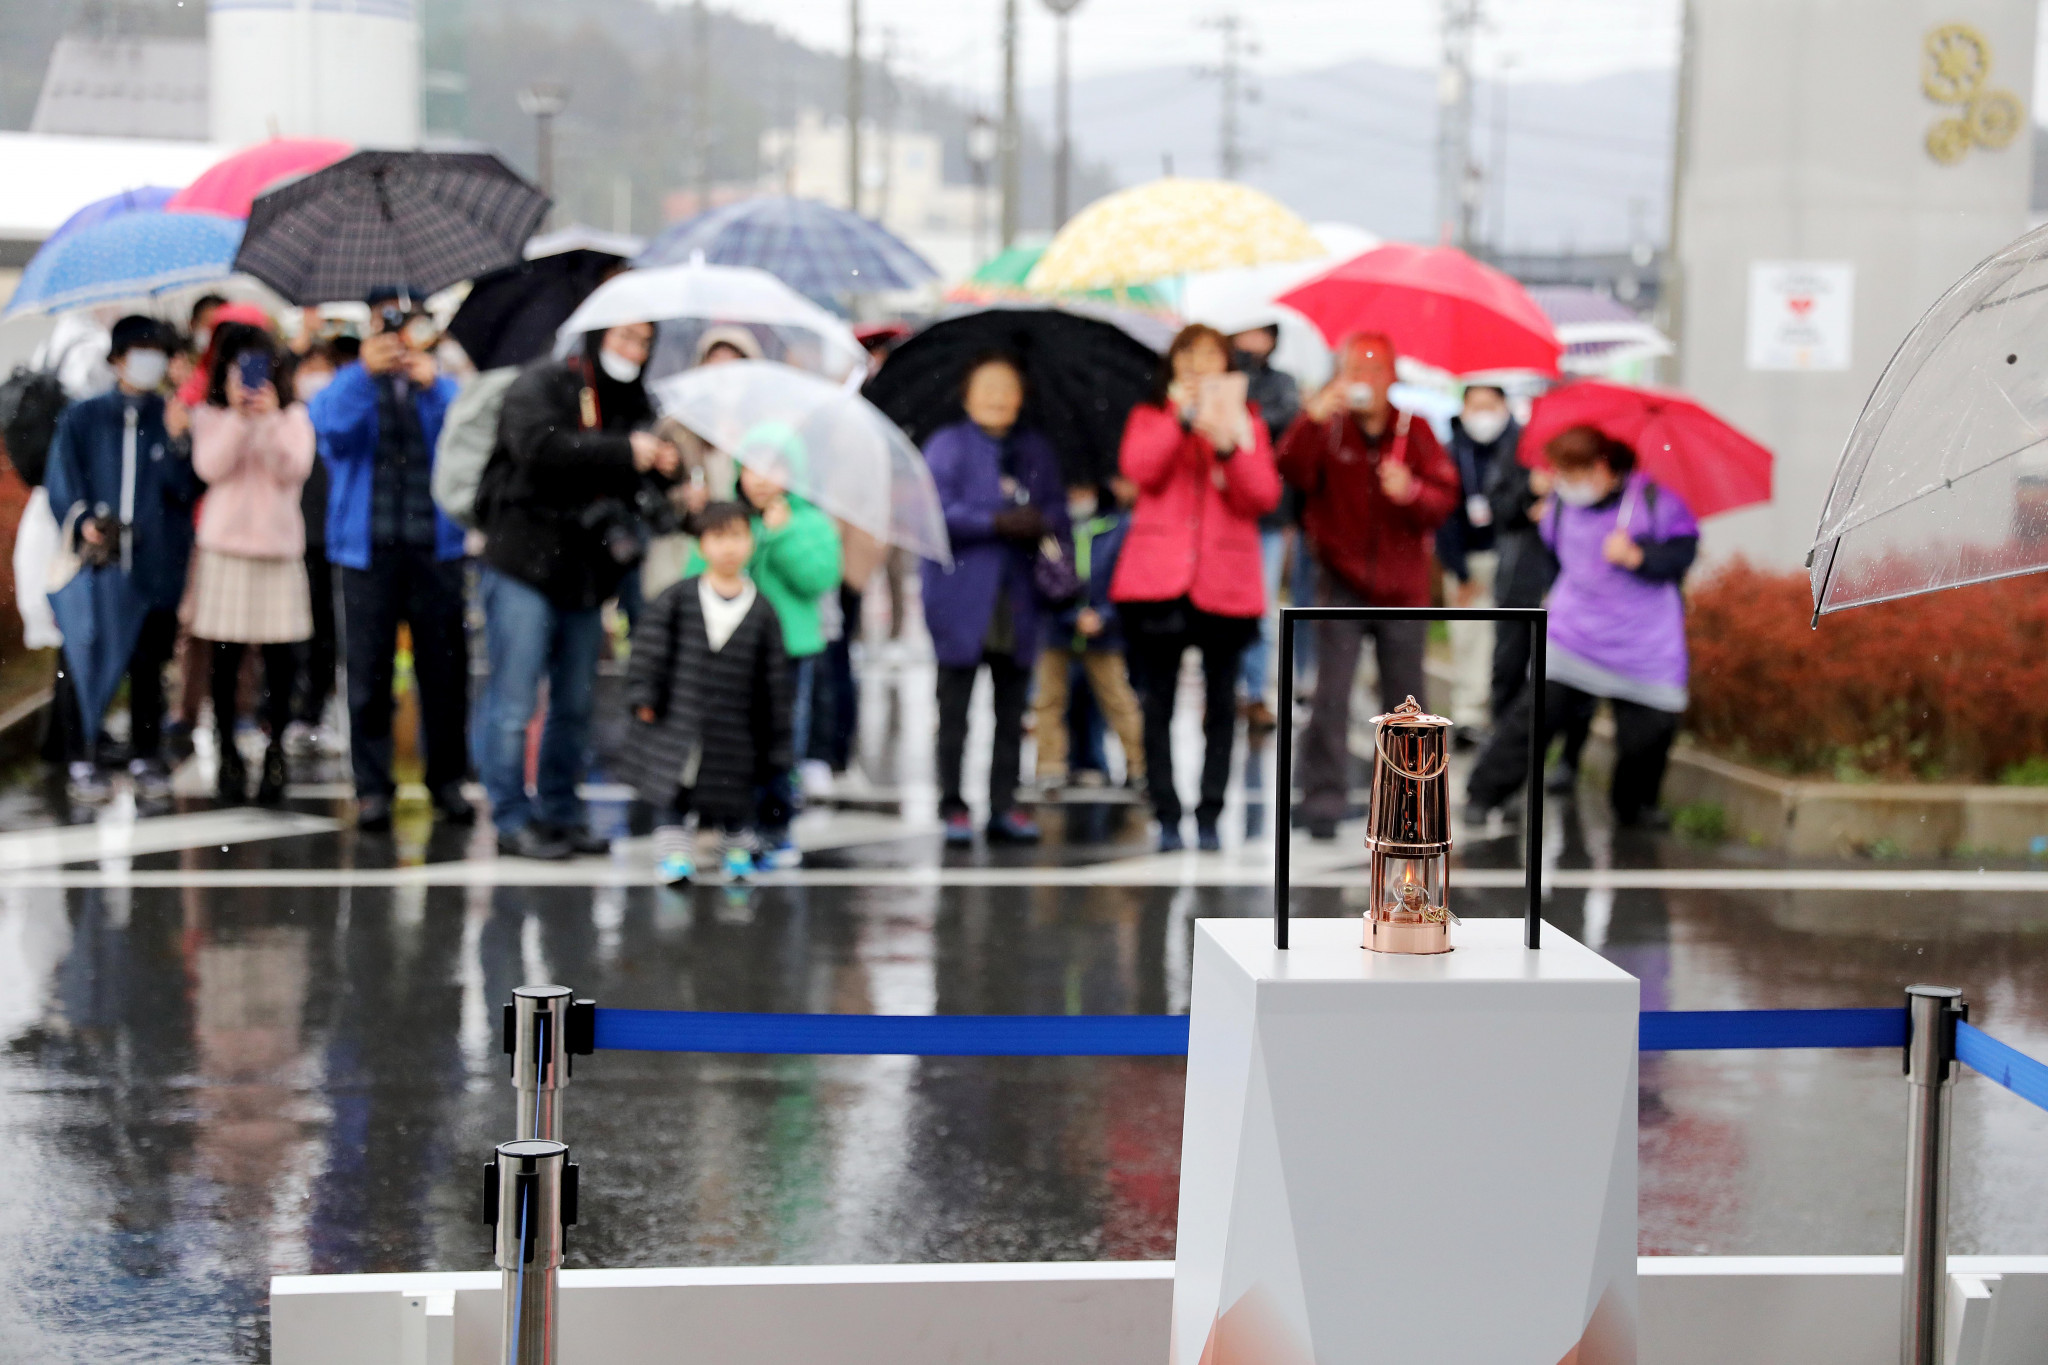 Crowds flocked to see the Flame when it arrived in Japan ©Tokyo 2020